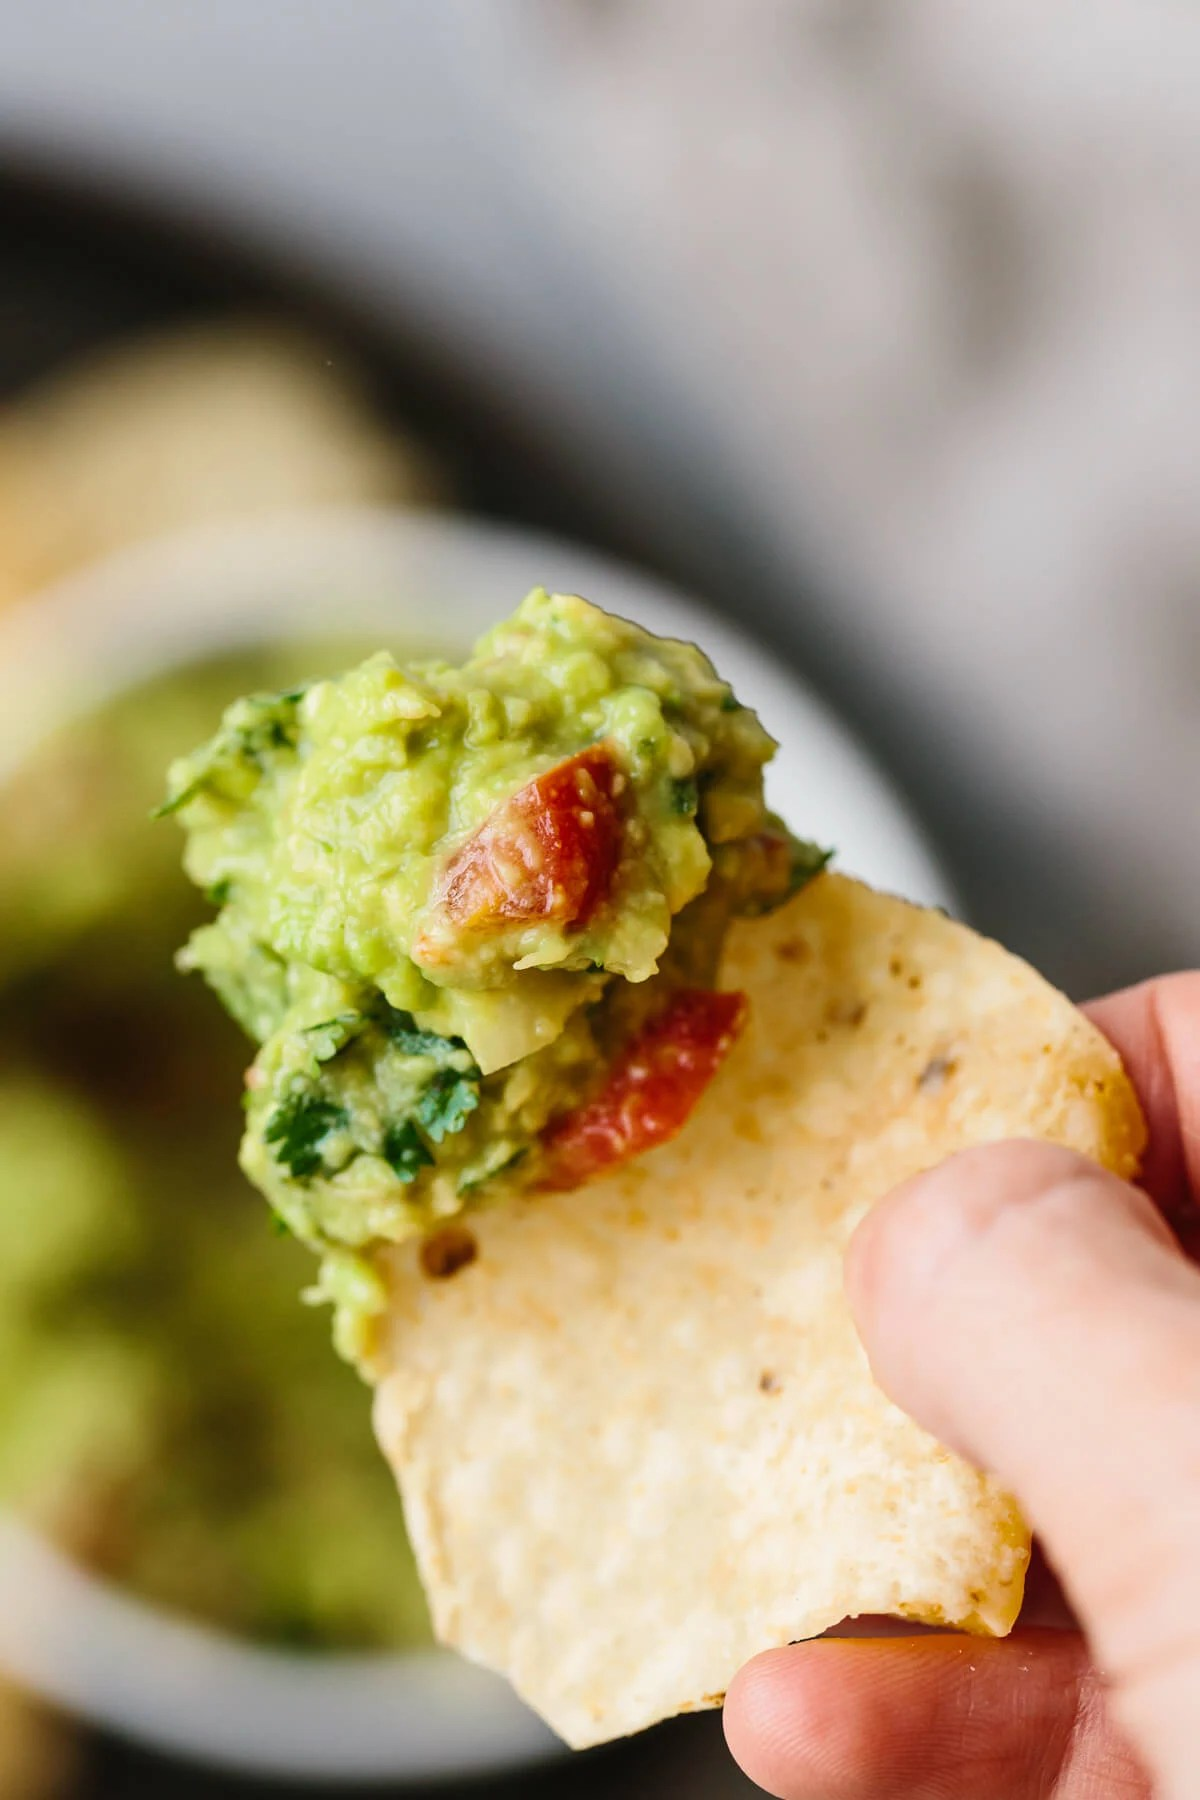 A scoop of guacamole on a tortilla chip.